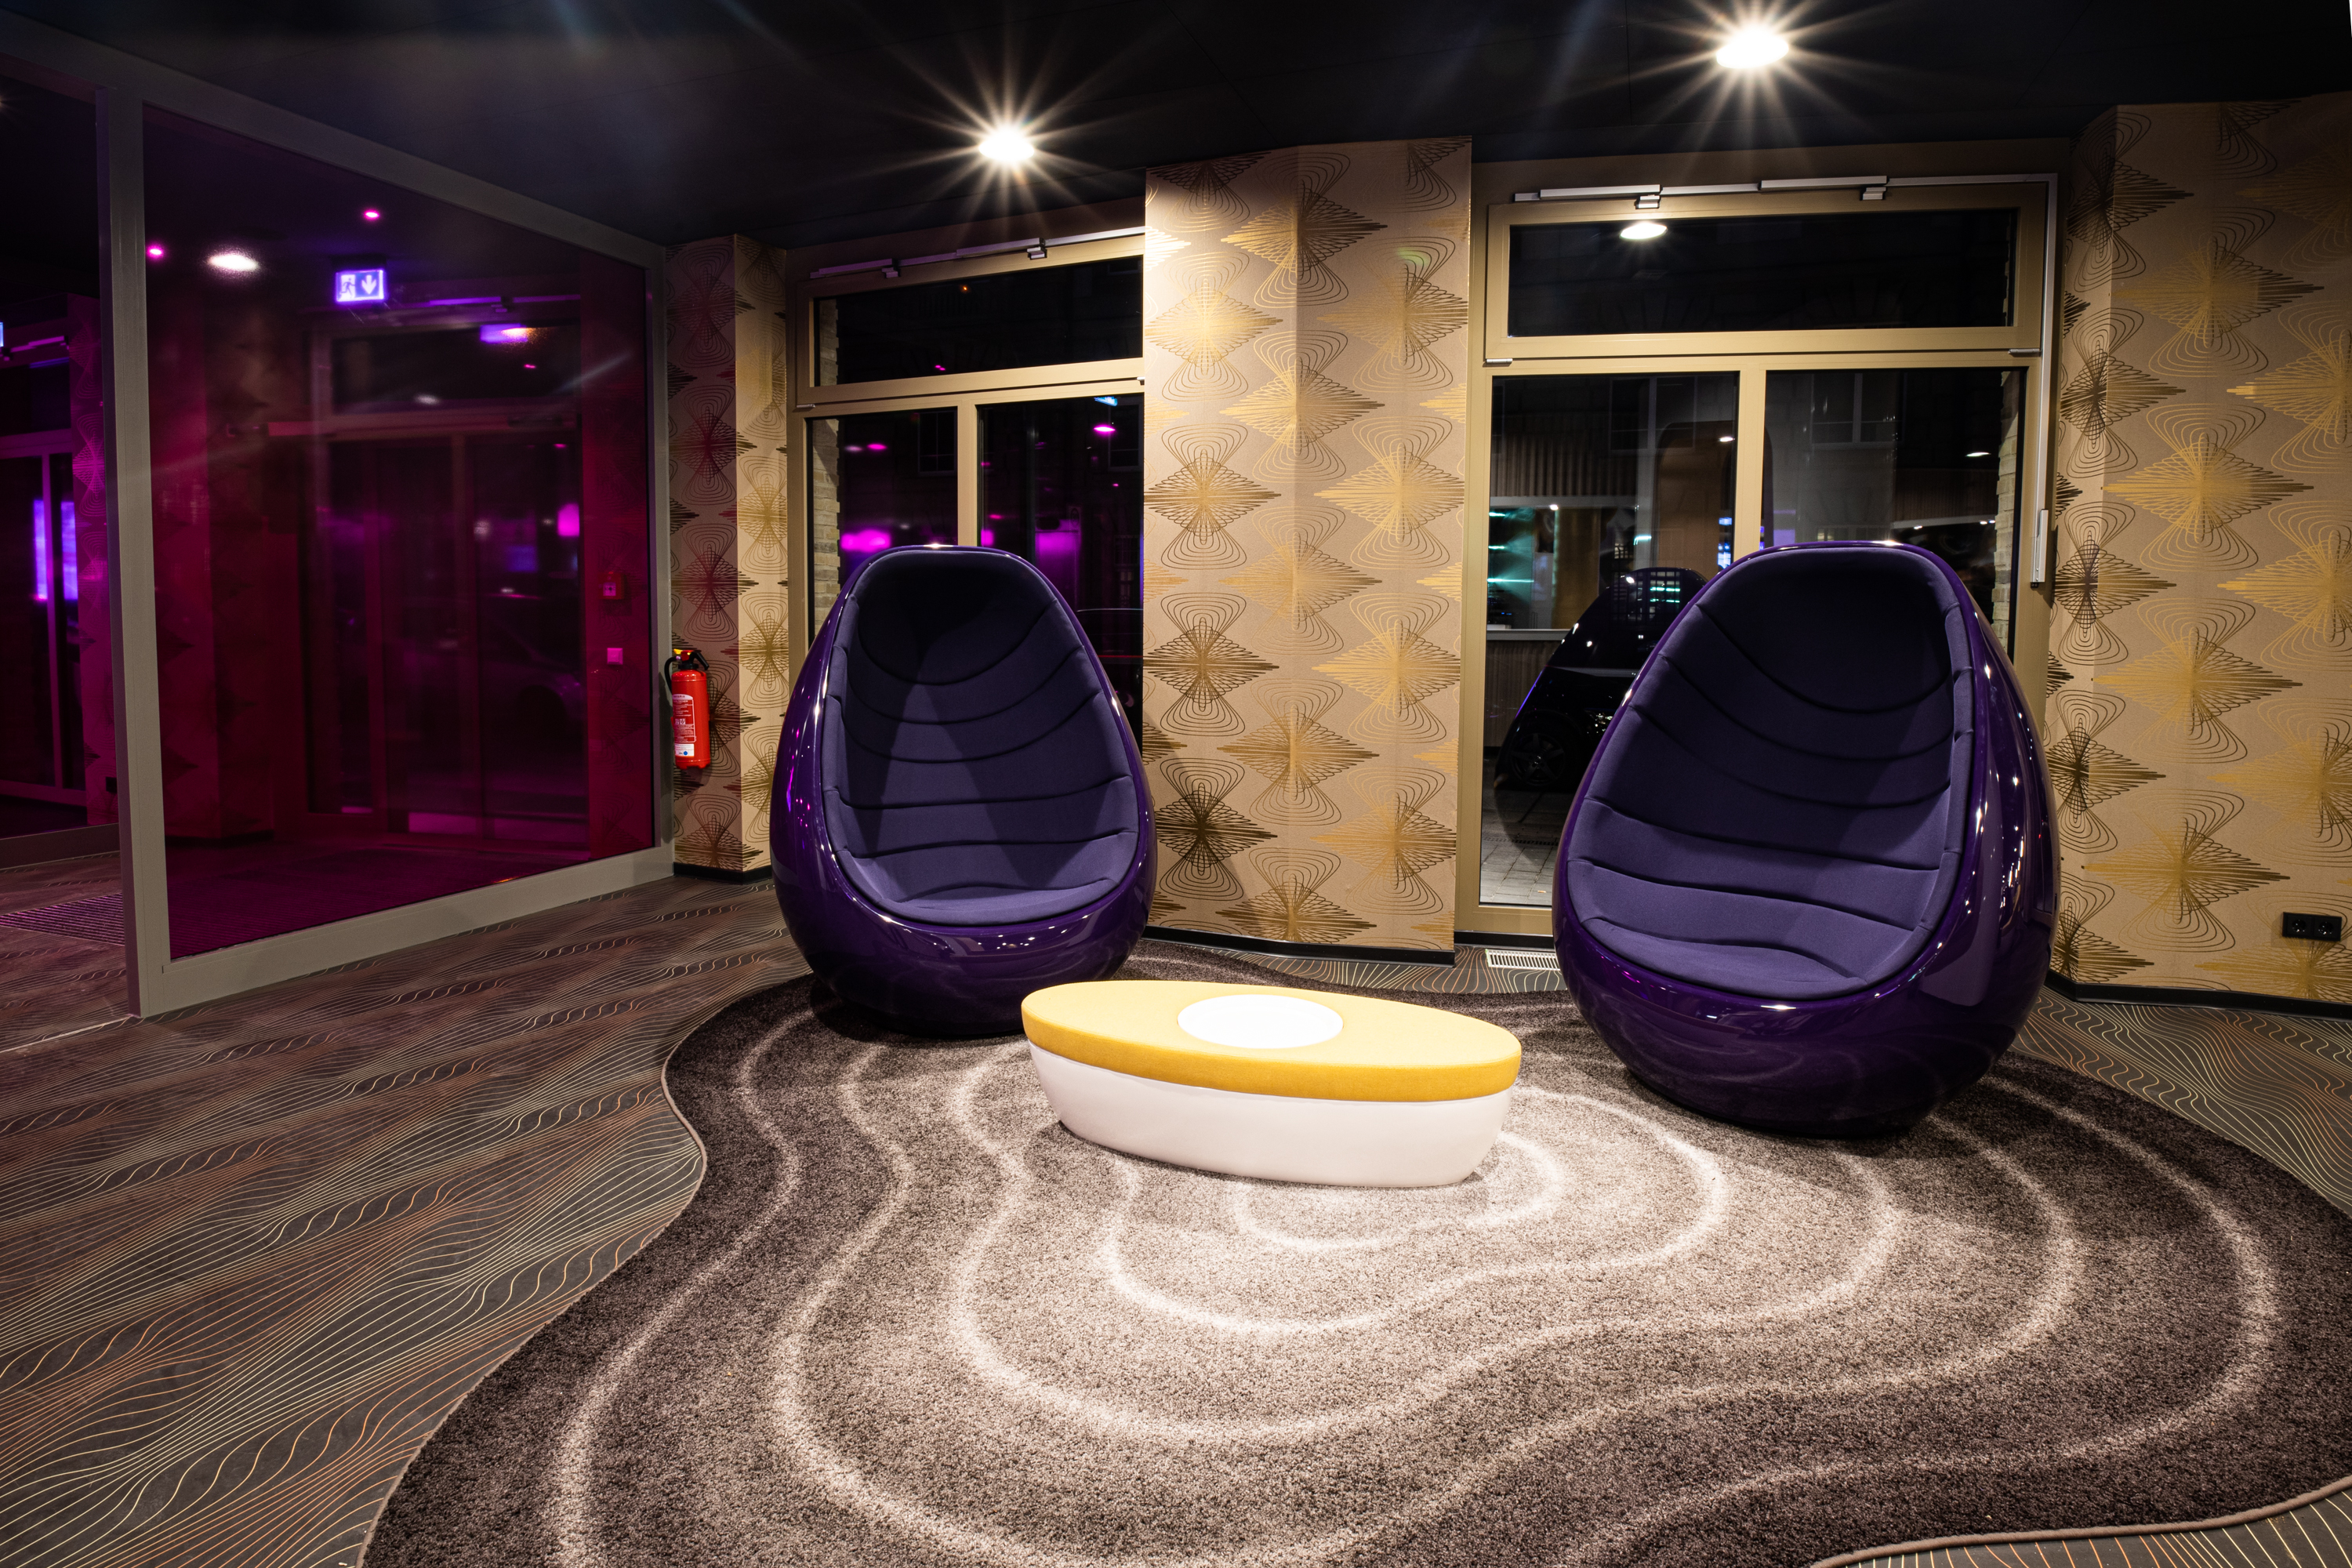 prizeotel Erfurt-City Lobby Lounge Egg Chairs